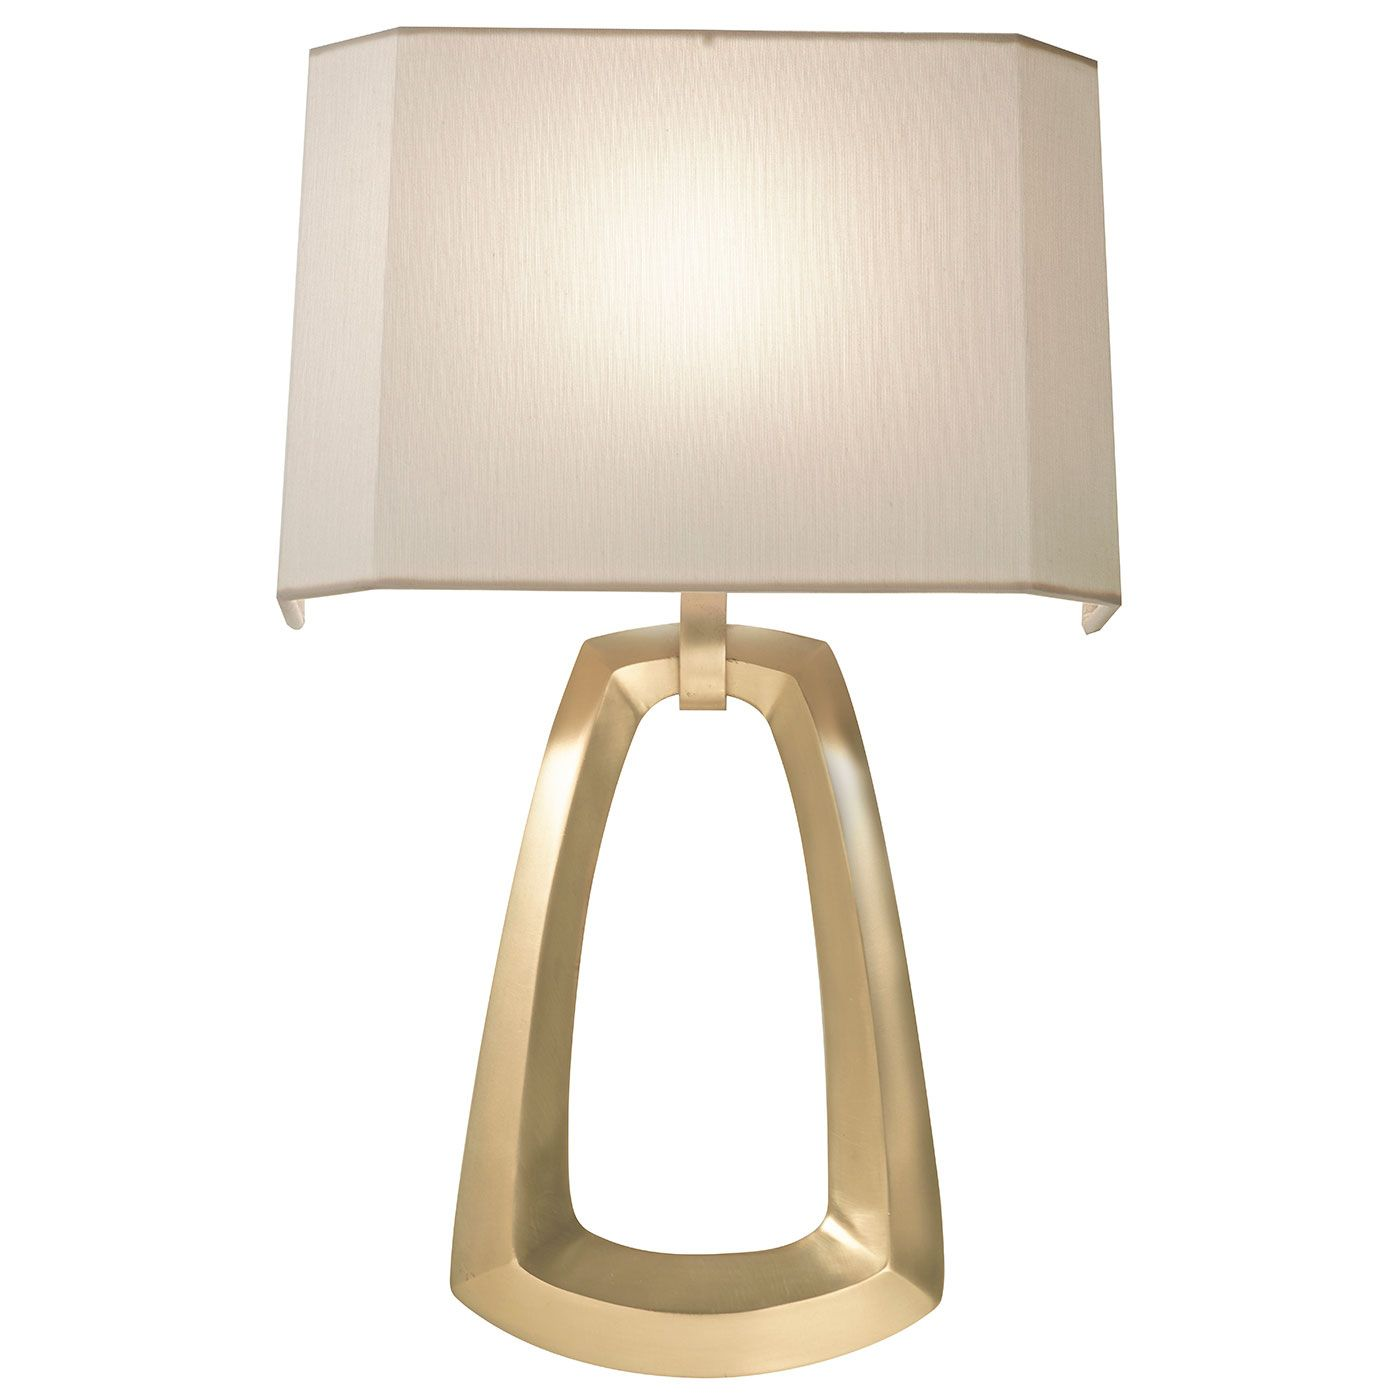 """Grosvenor Square 847250 Wall Sconce by Fine Art Lamps 